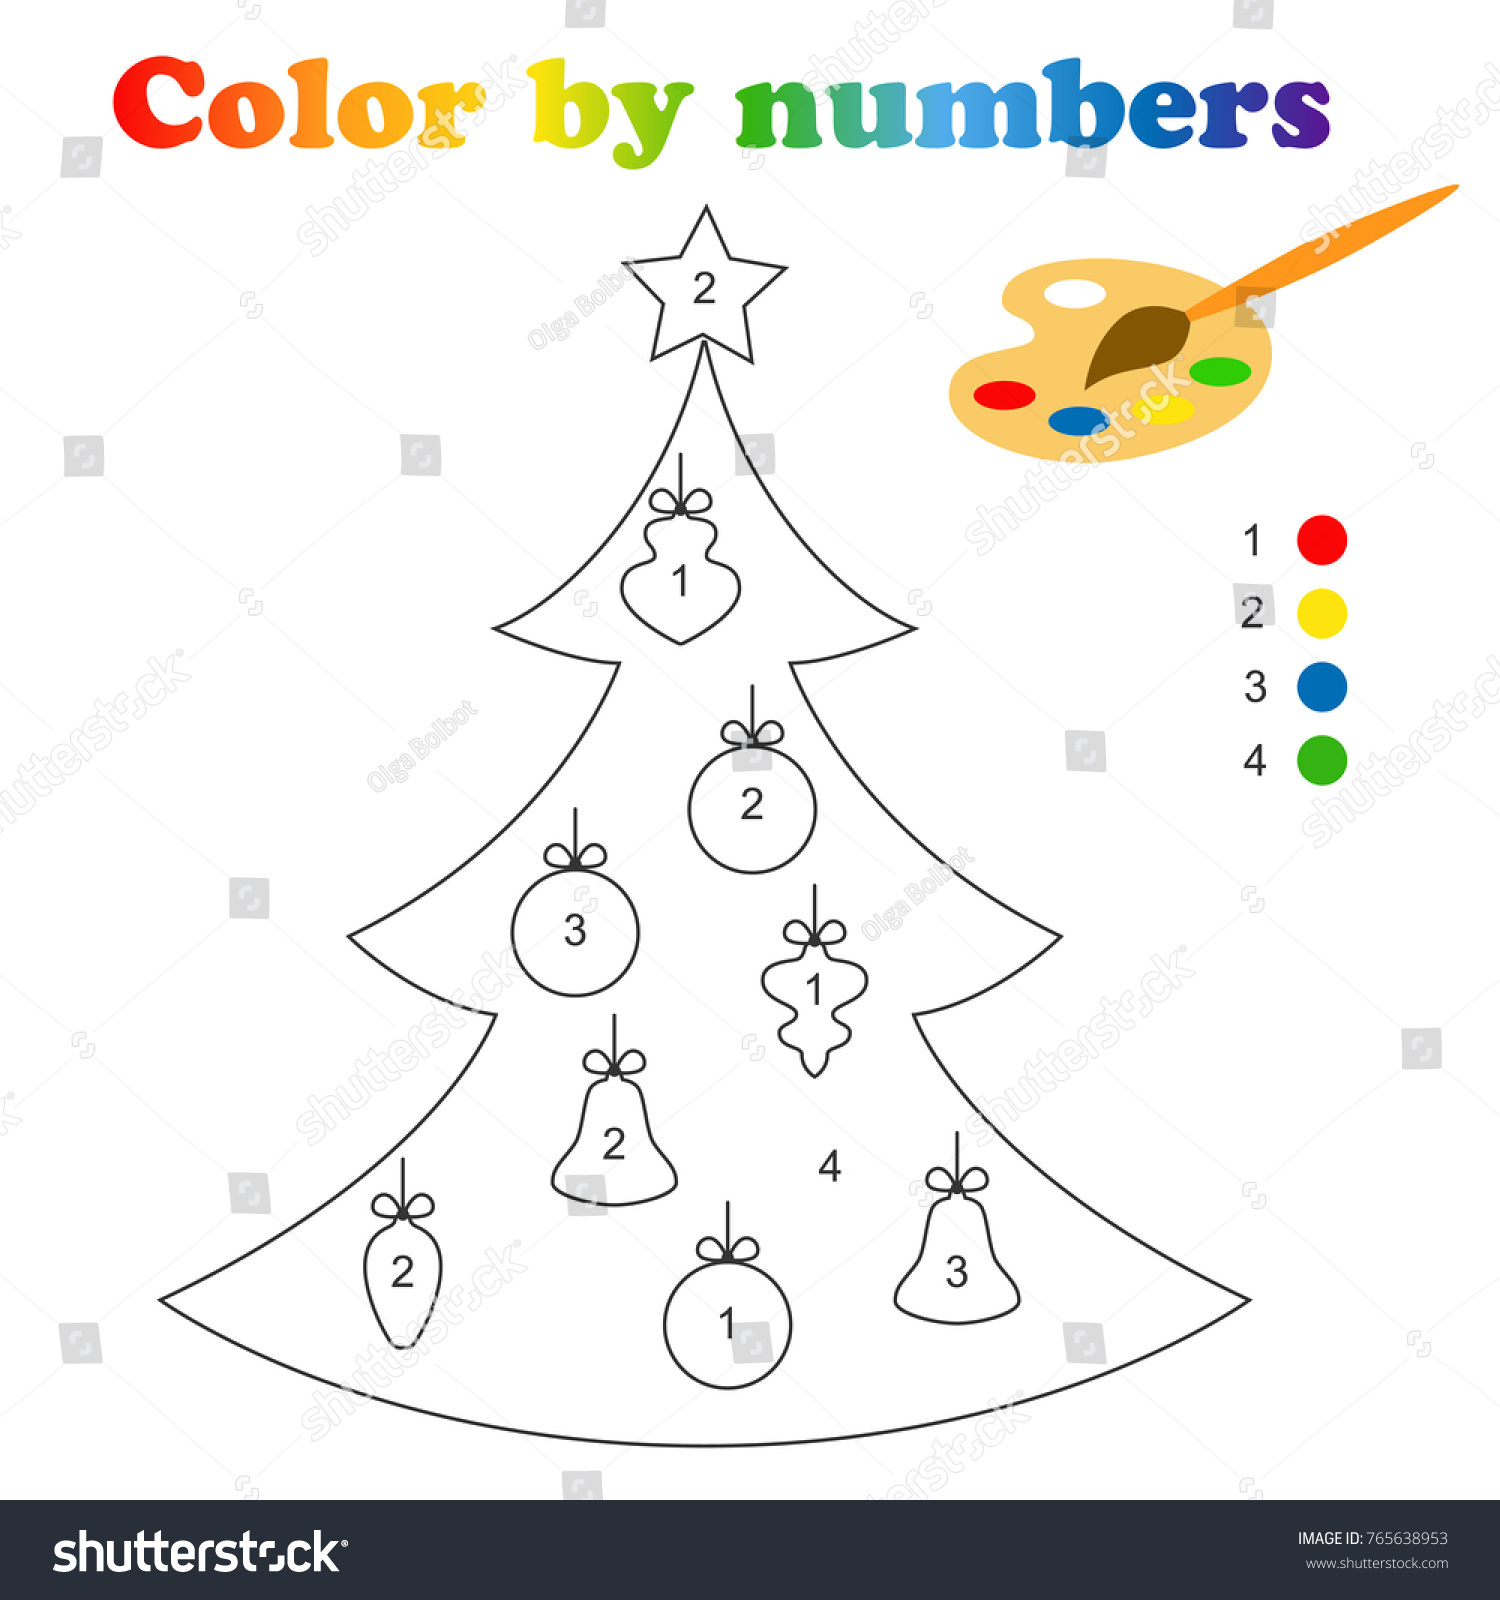 Christmas Adult Color By Numbers (Volume 1): 50 Color By Numbers Christmas  Coloring Pages for Adult ....100 Peg 50 Christmas Numbers Images by Rainbow  Publishing | 1600x1500